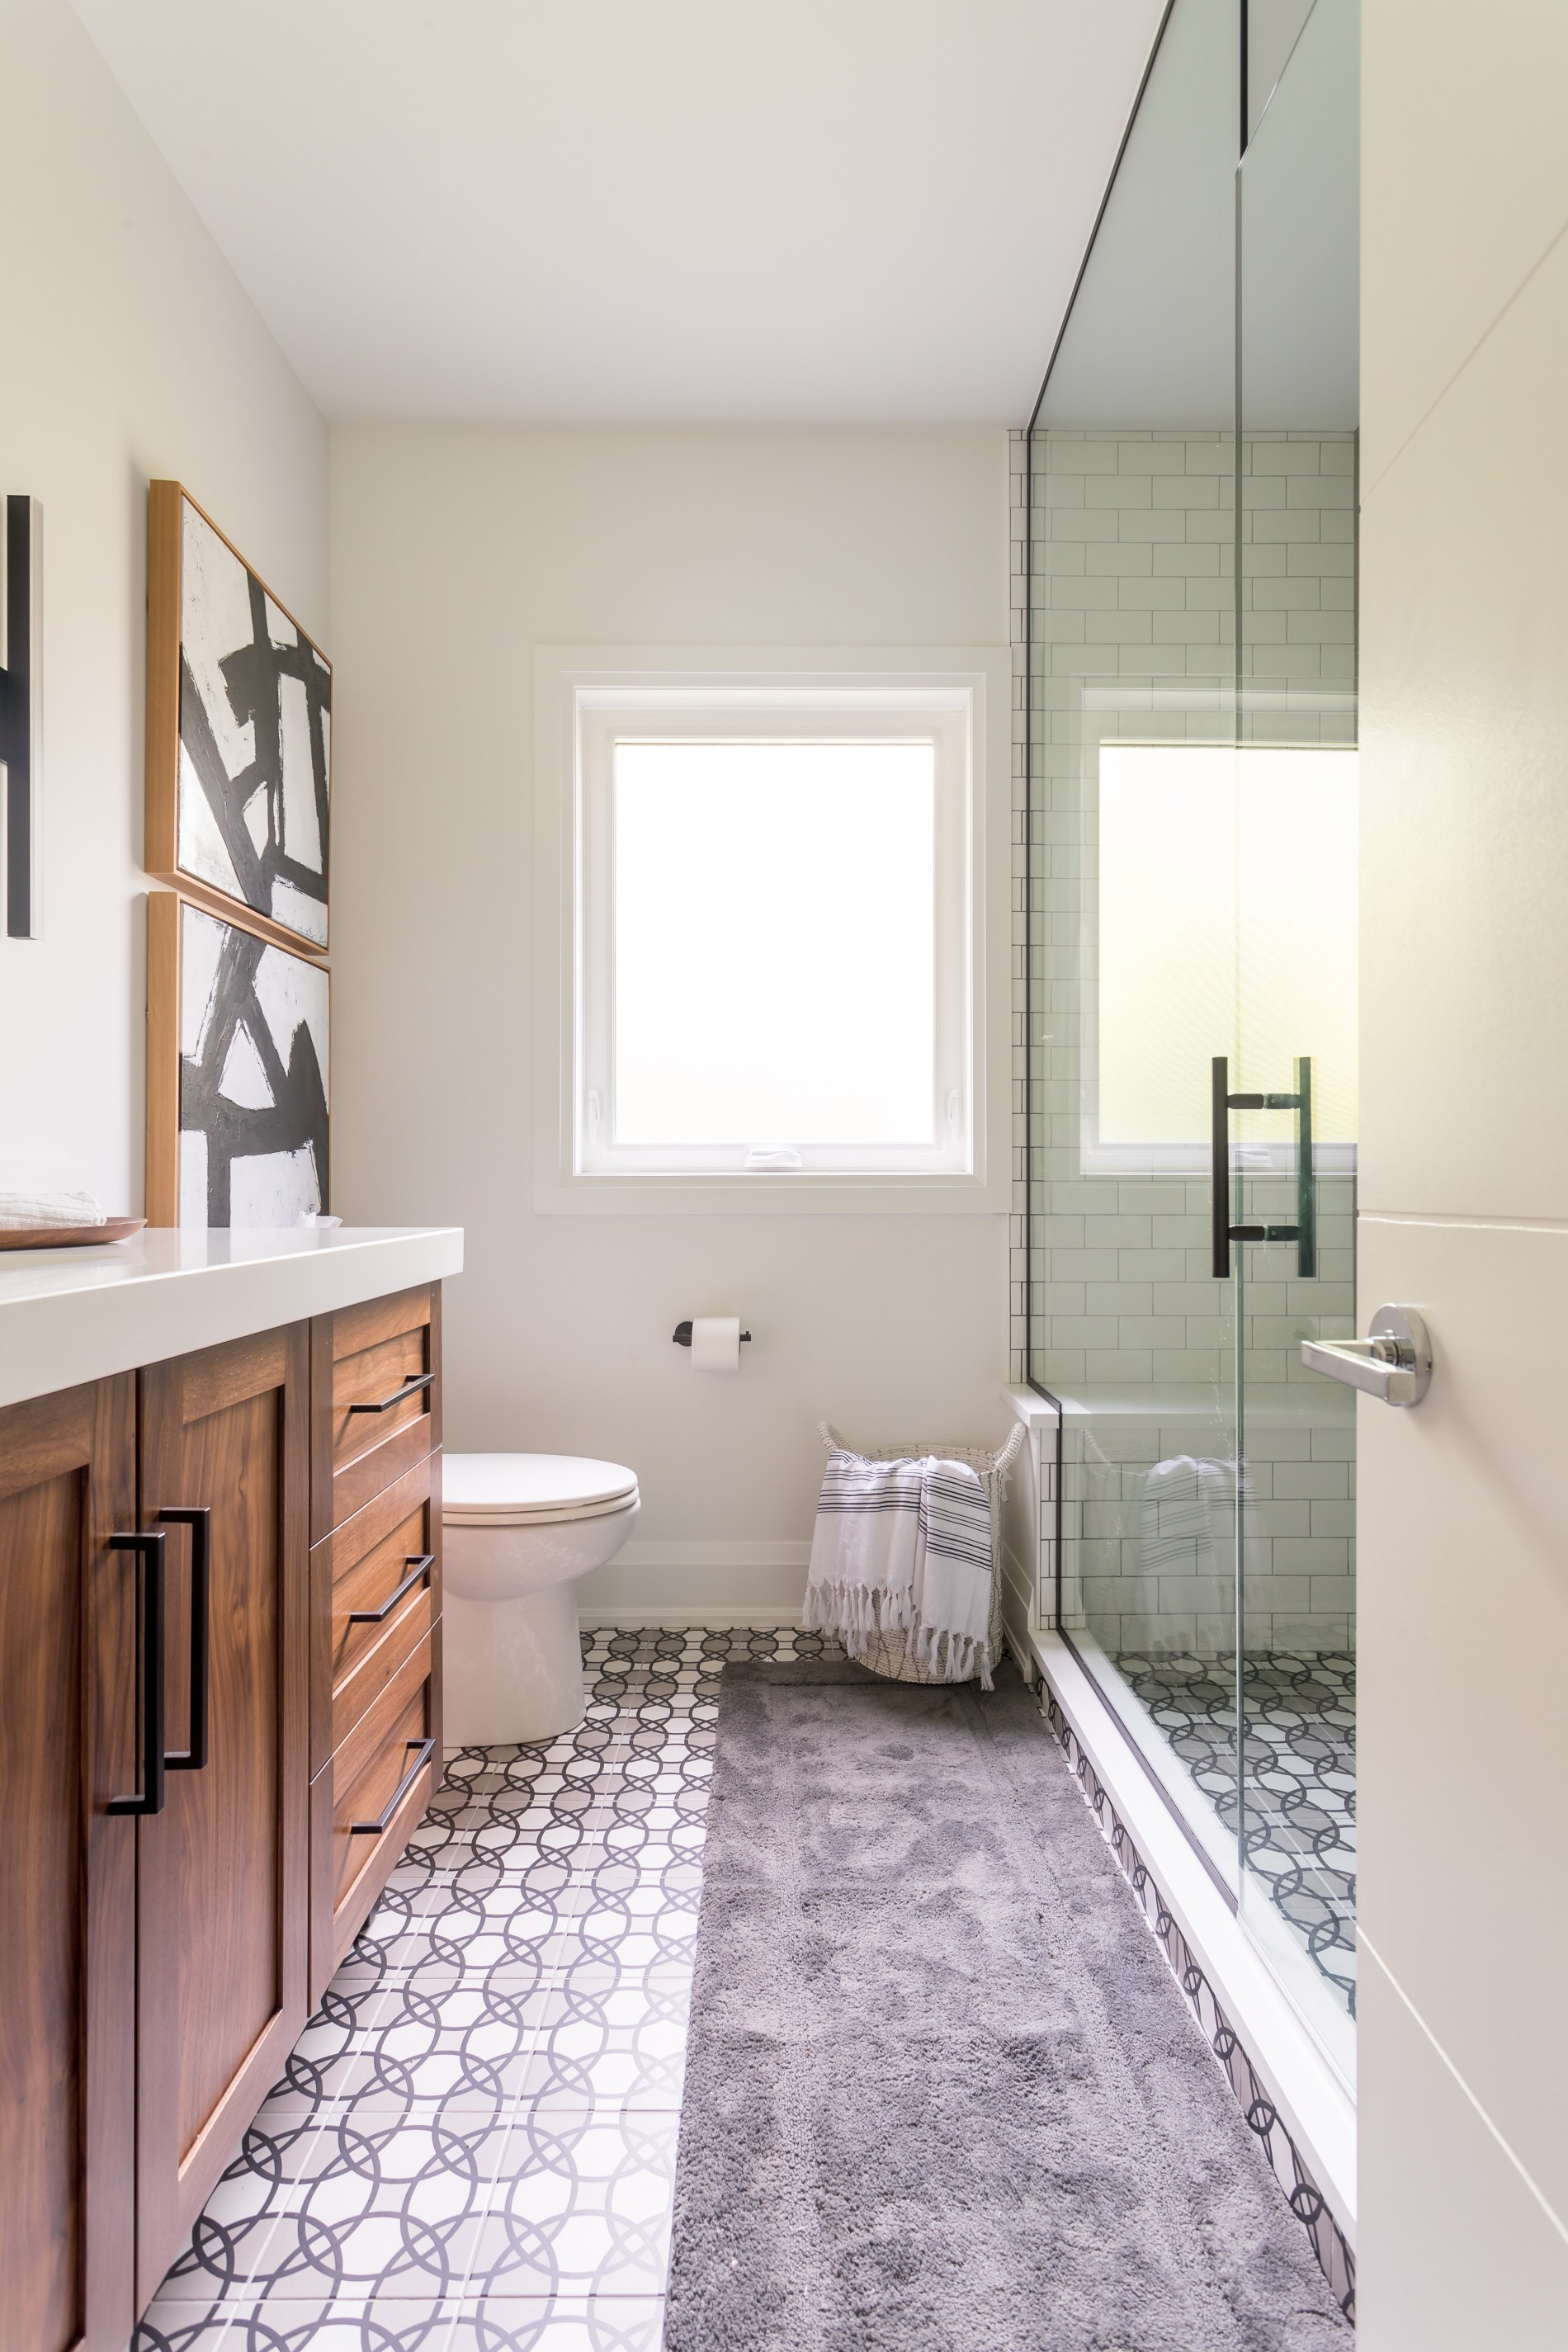 Harper Designs Project: Highvalley Bathroom 2 - 4